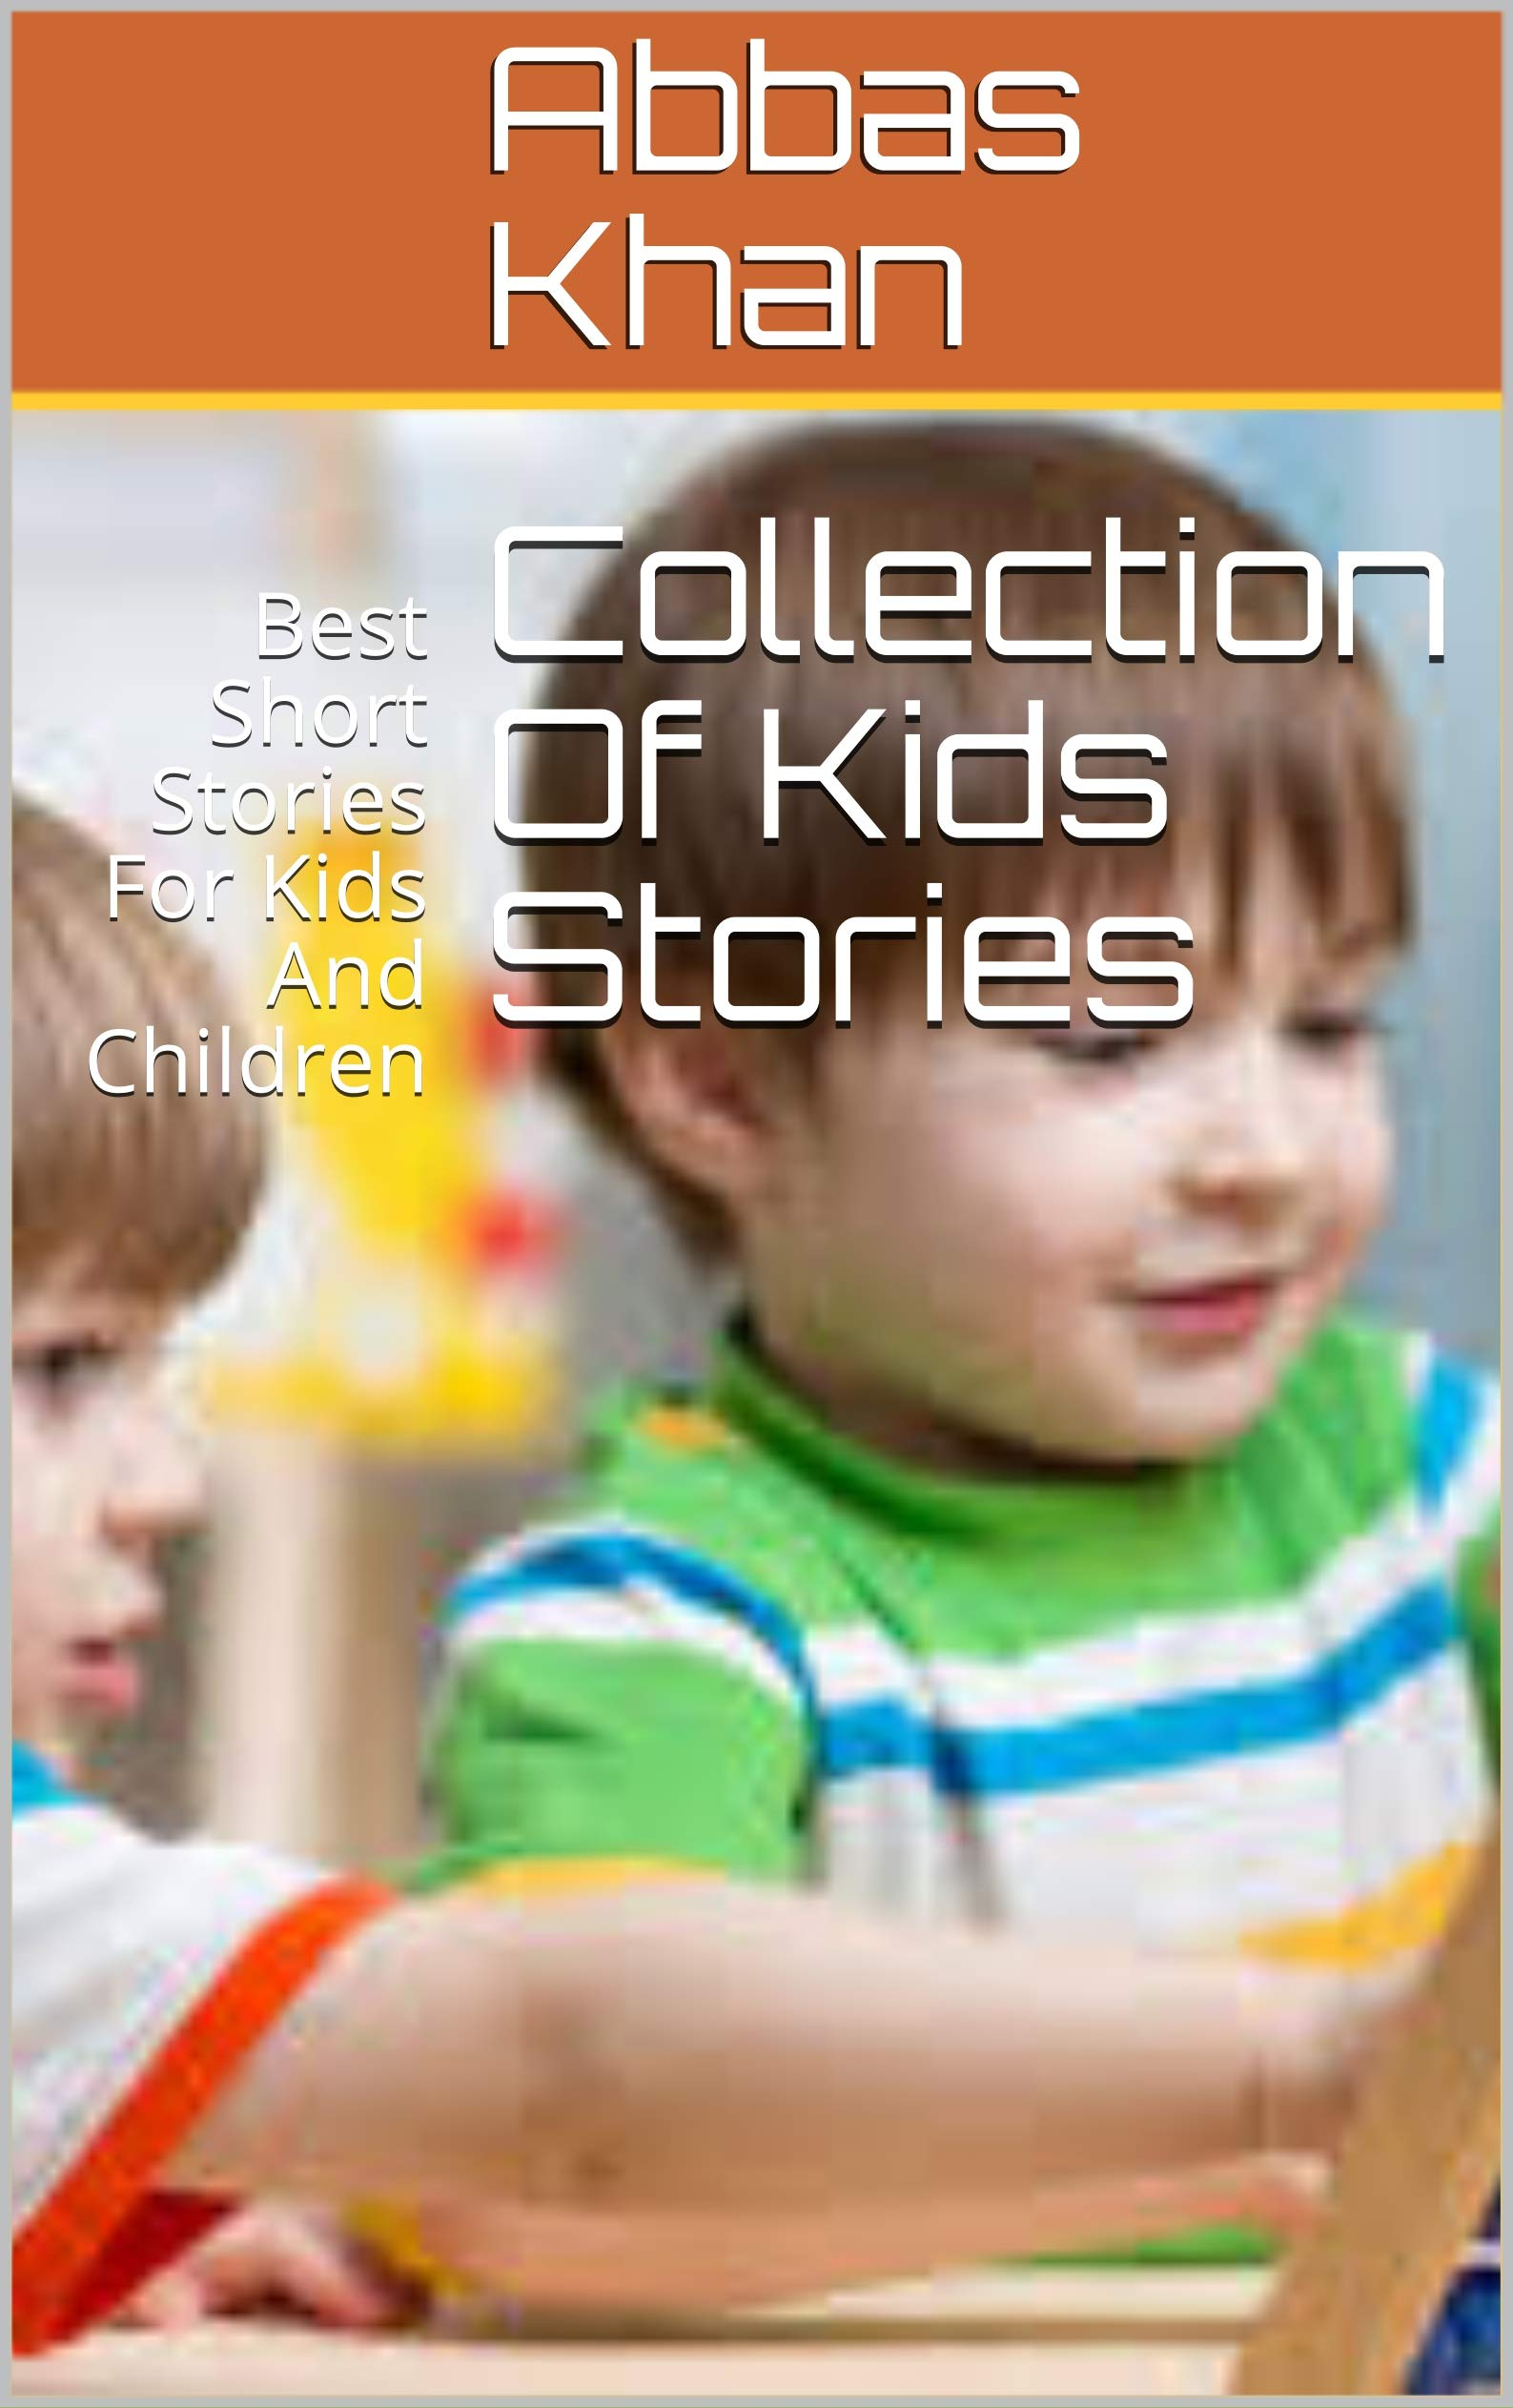 Collection Of Kids Stories: Best Short Stories For Kids And Children